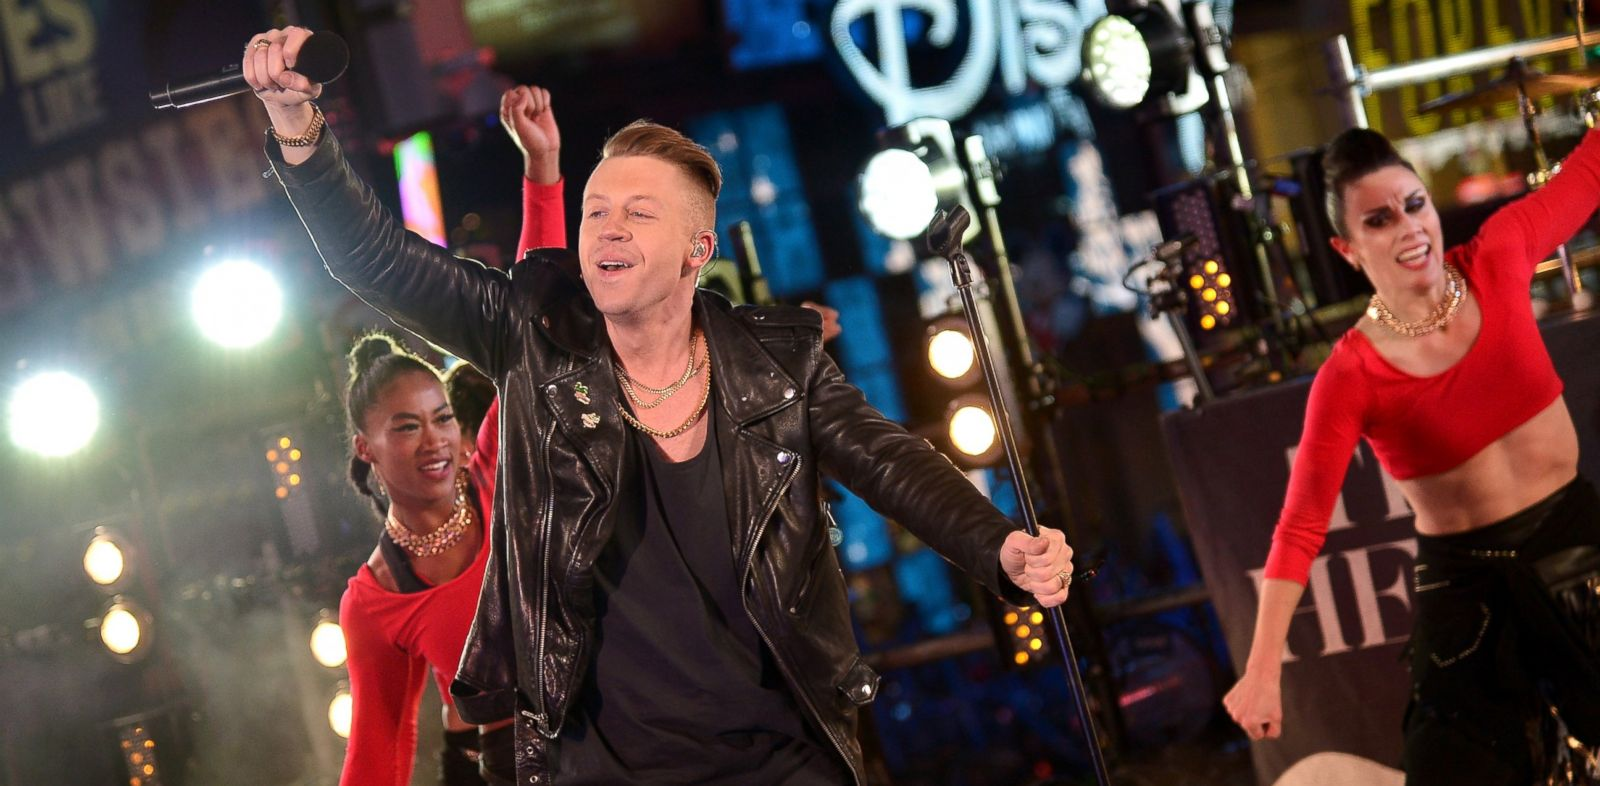 PHOTO: Macklemore and Ryan Lewis perform at Dick Clarks New Years Rockin Eve with Ryan Seacrest 2014 on December 31, 2013 in New York, New York.